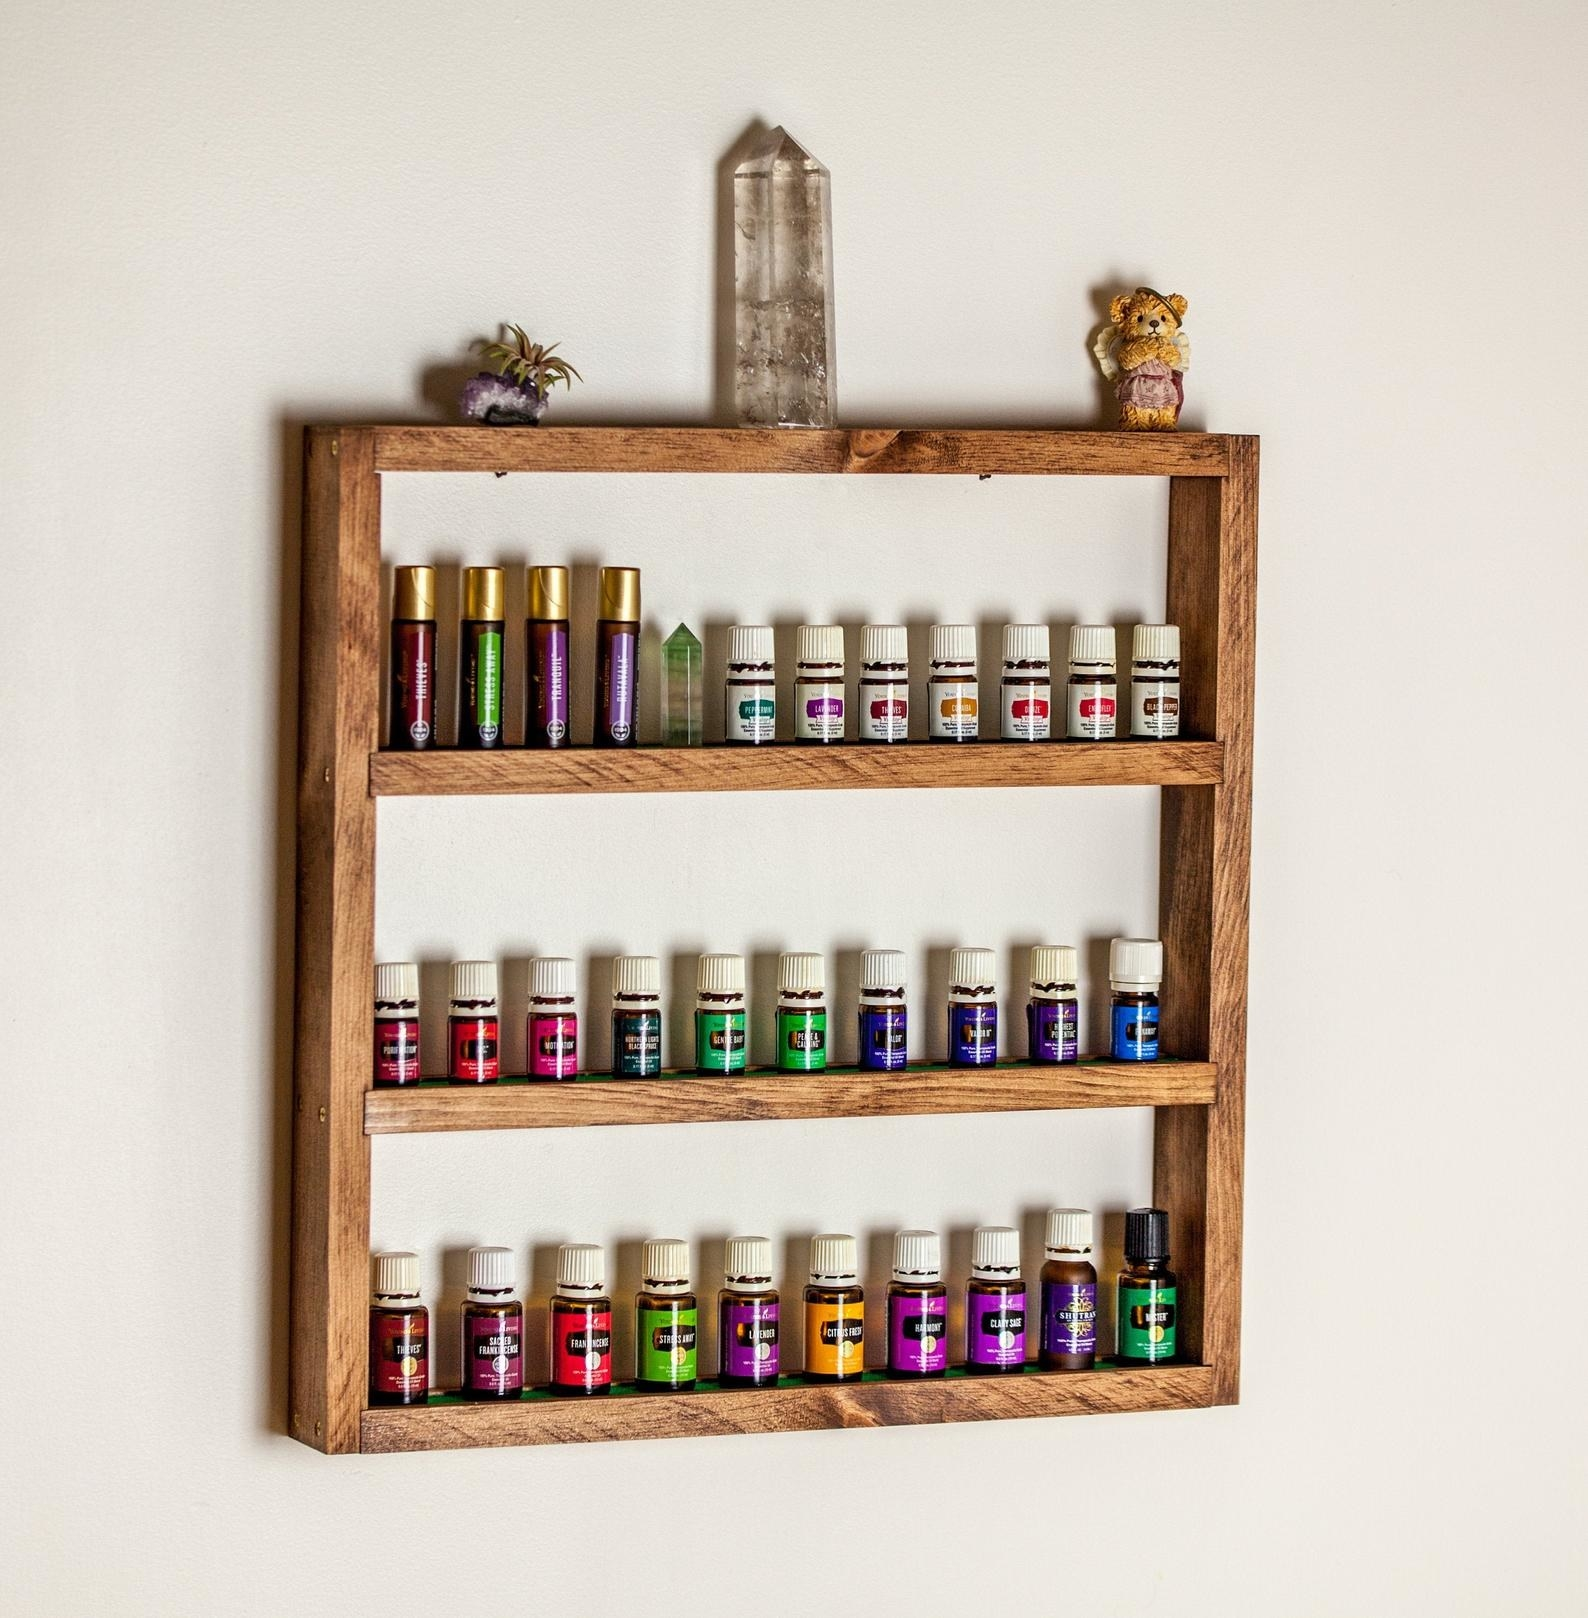 The three-tier shelf holding various bottles of essential oil